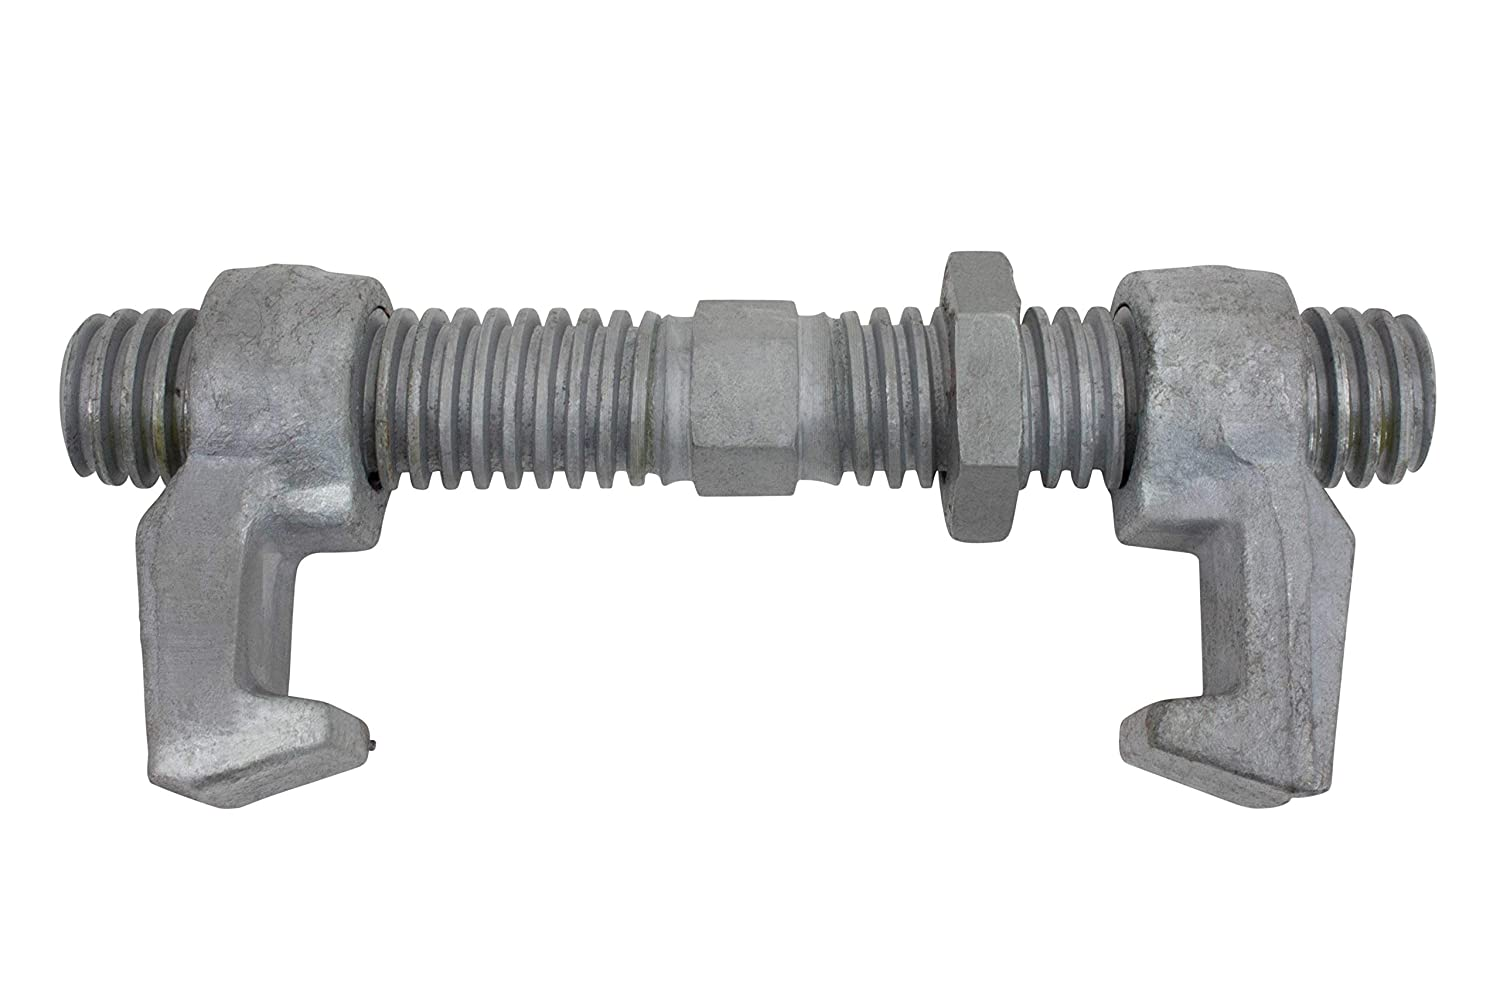 Brand New Container Bridge Fittings Clamp 260 mm Clamp